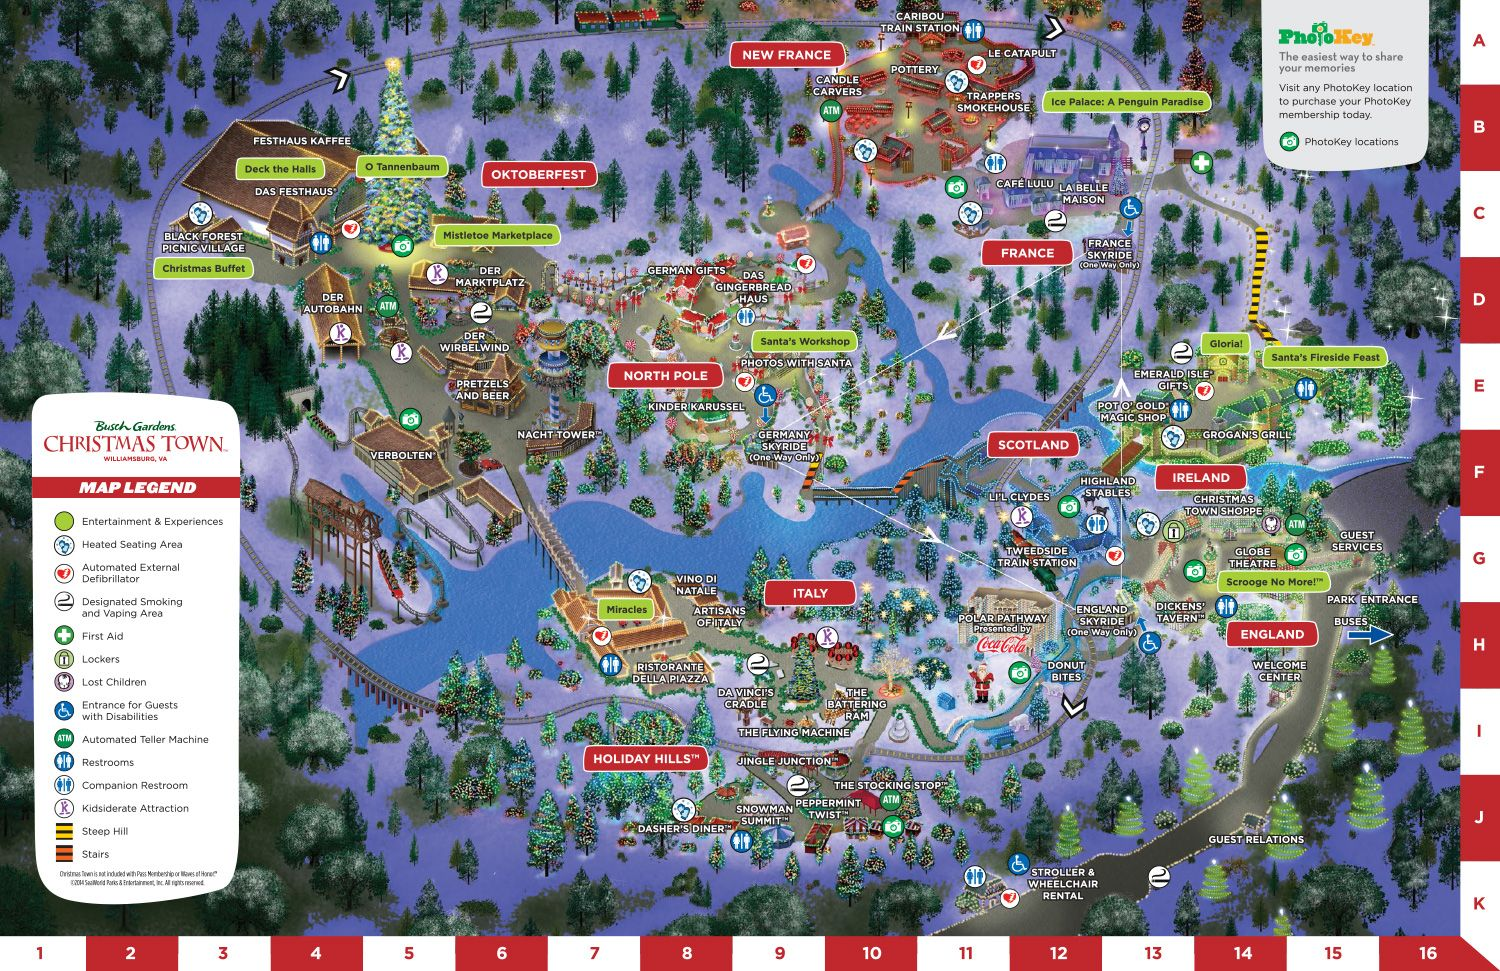 b12baa2f8d5b3cea44bb7f3e3da0a3ee - Busch Gardens Christmas Town 2019 Map